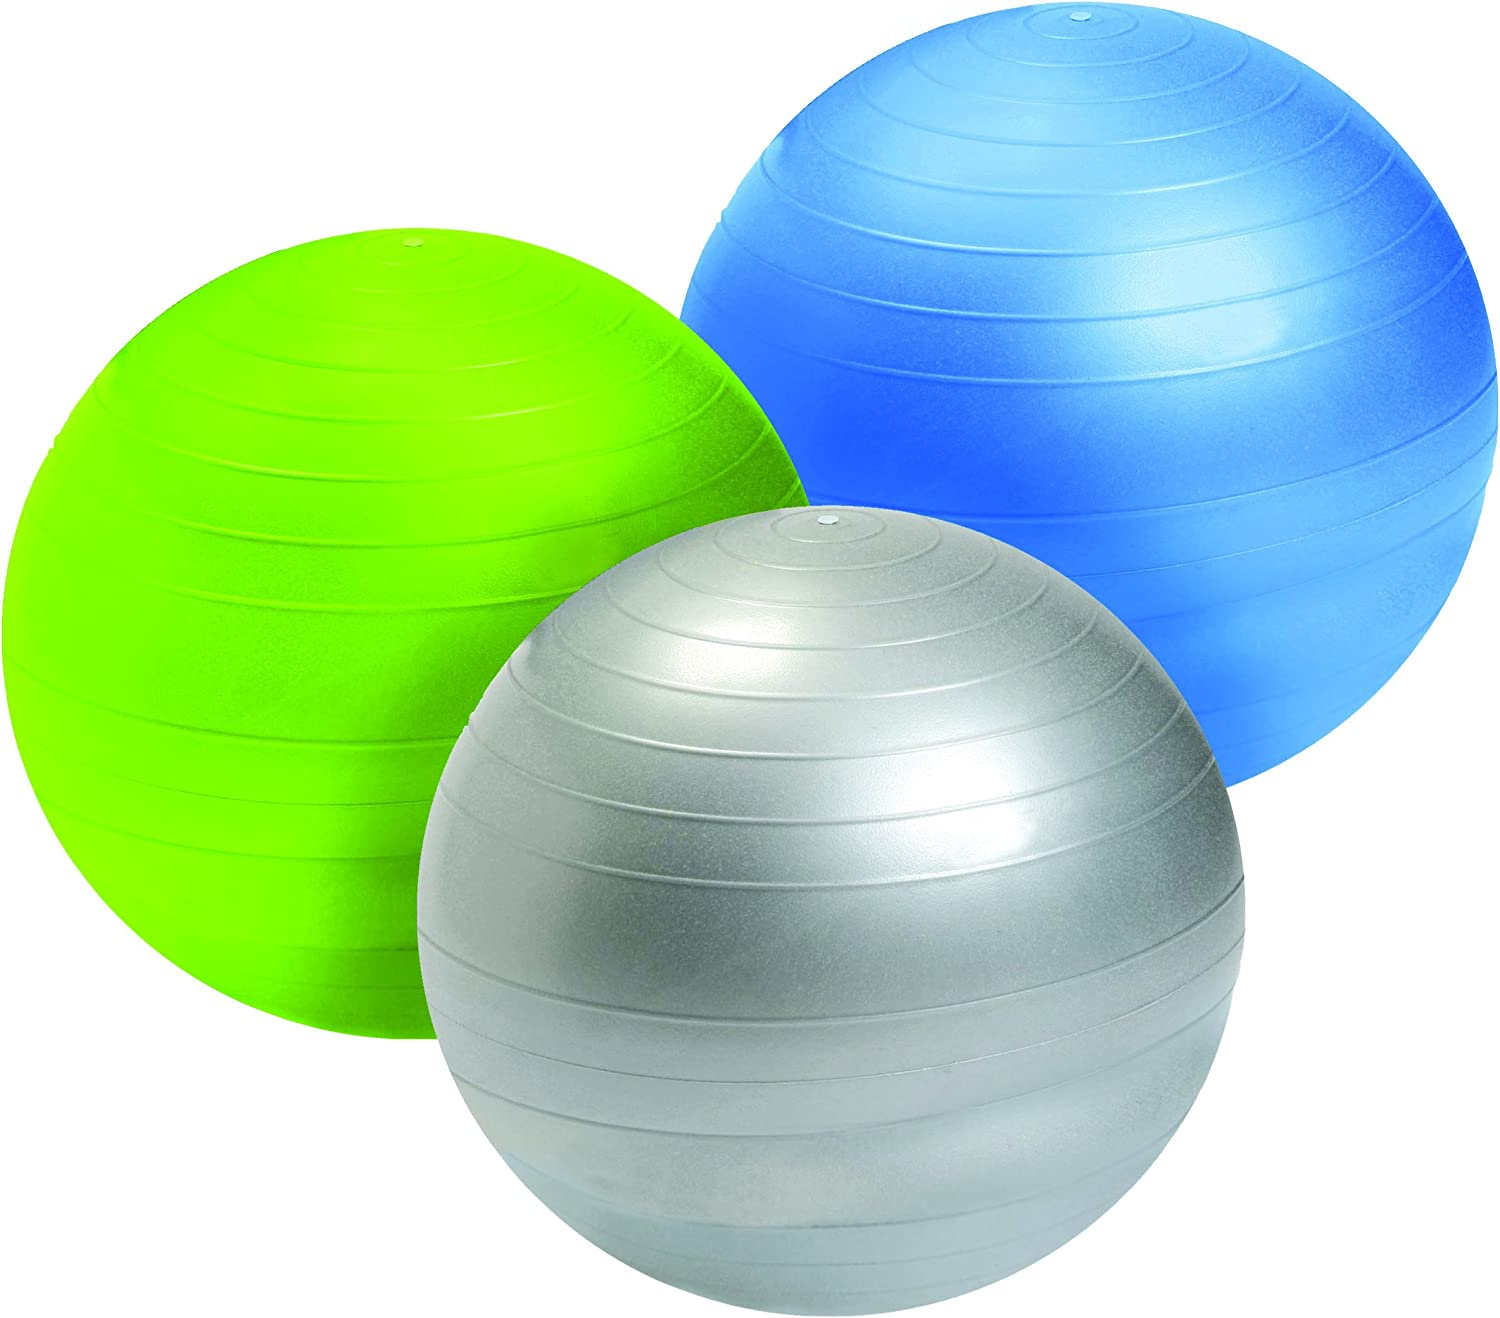 Aeromat Replacement Ball for Kids Ball Chair, Chair Body Sold Separately